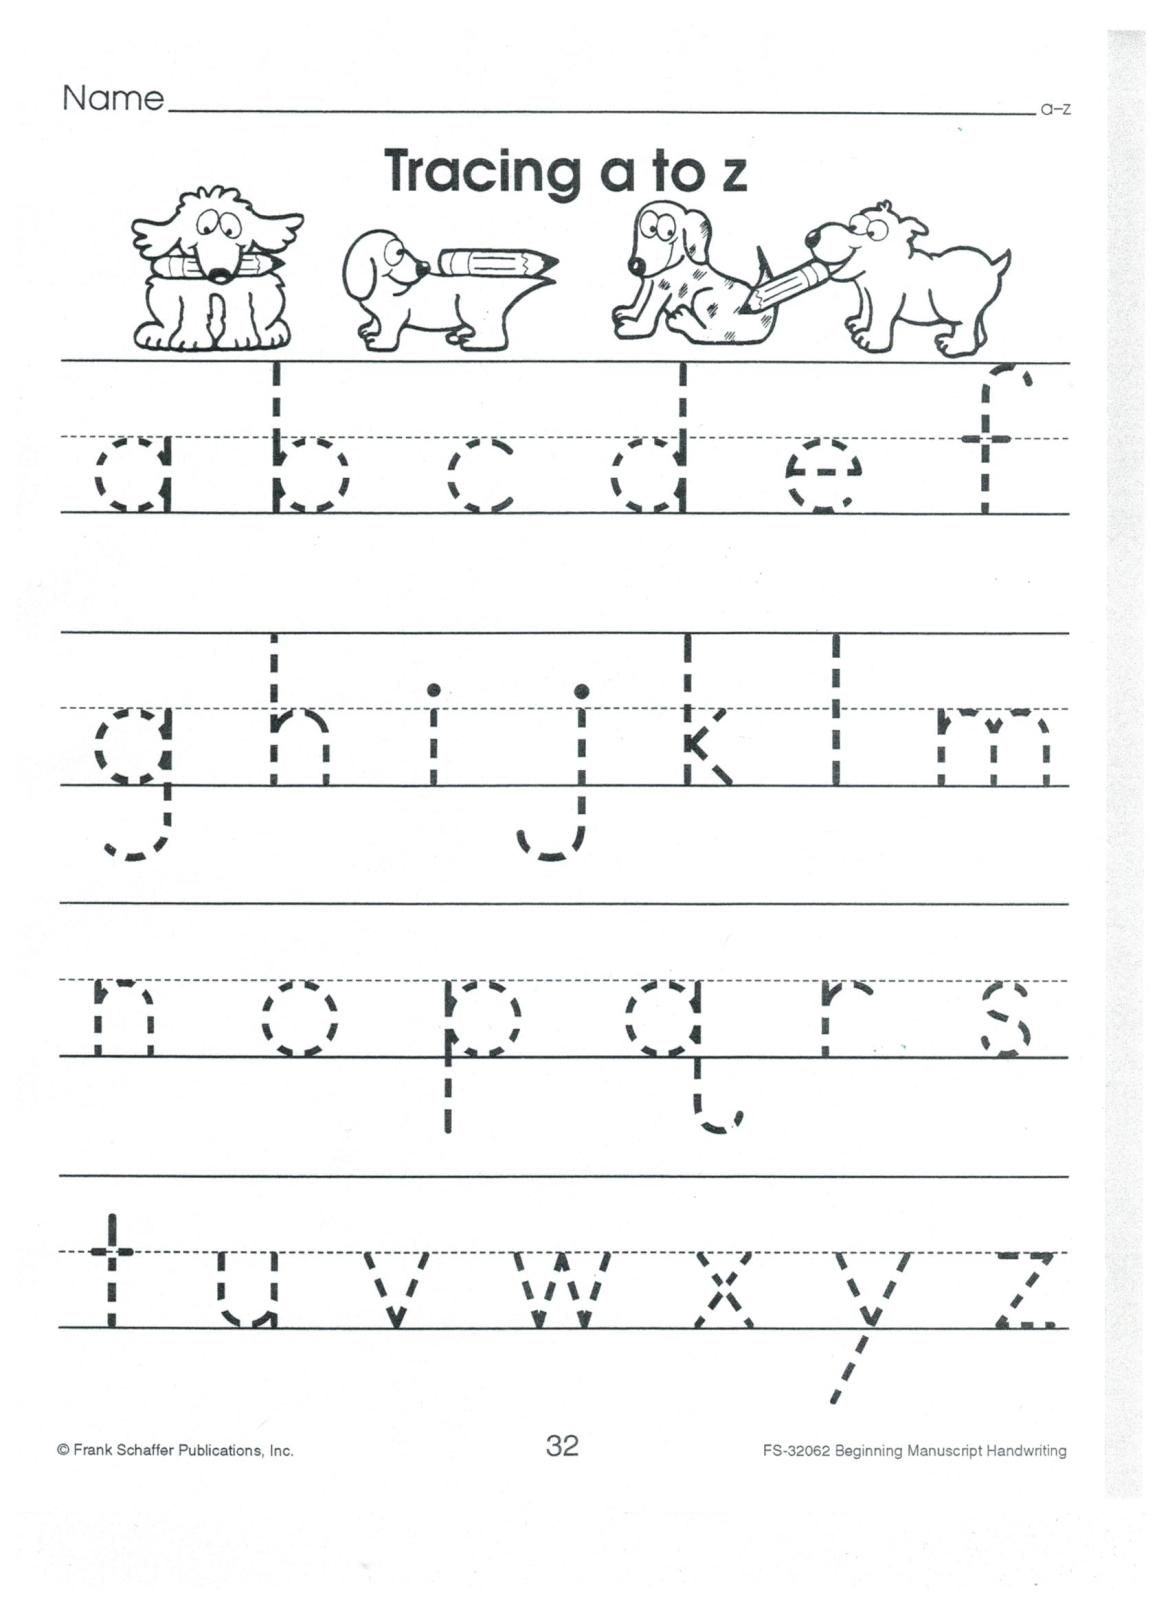 A To Z Name Tracing Worksheets | Alphabetworksheetsfree inside Name Tracing A-Z